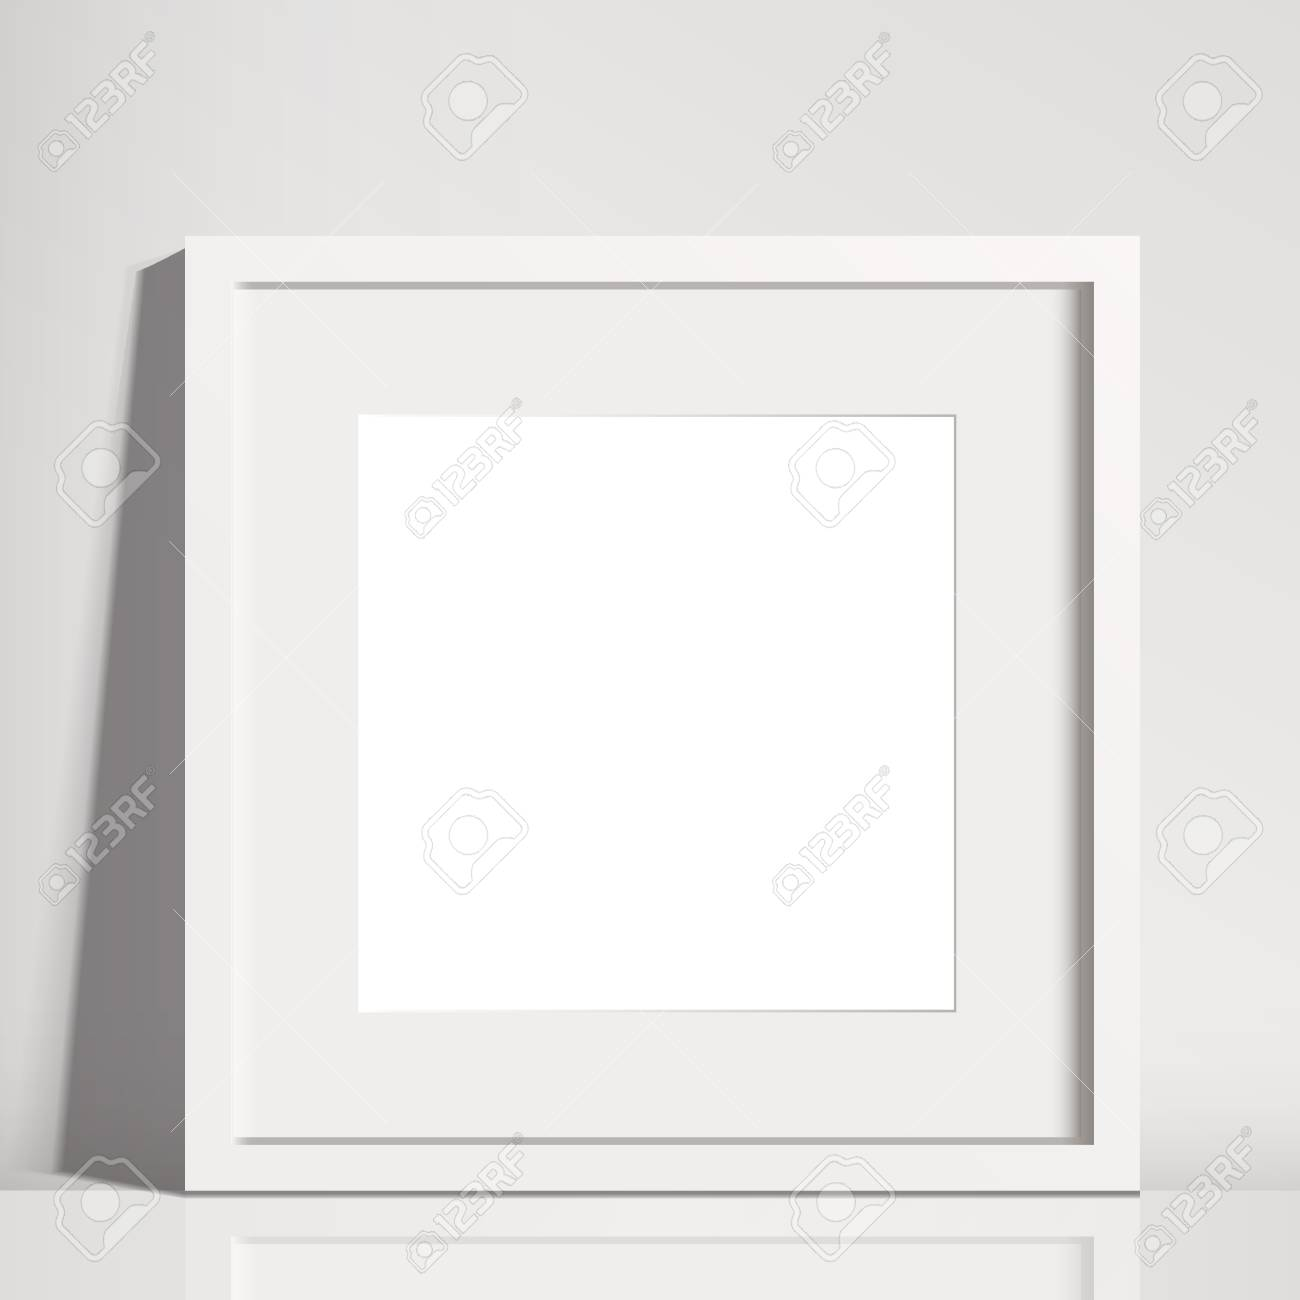 Realistic White Square Matted Picture Frame Mockup - Realistic ...